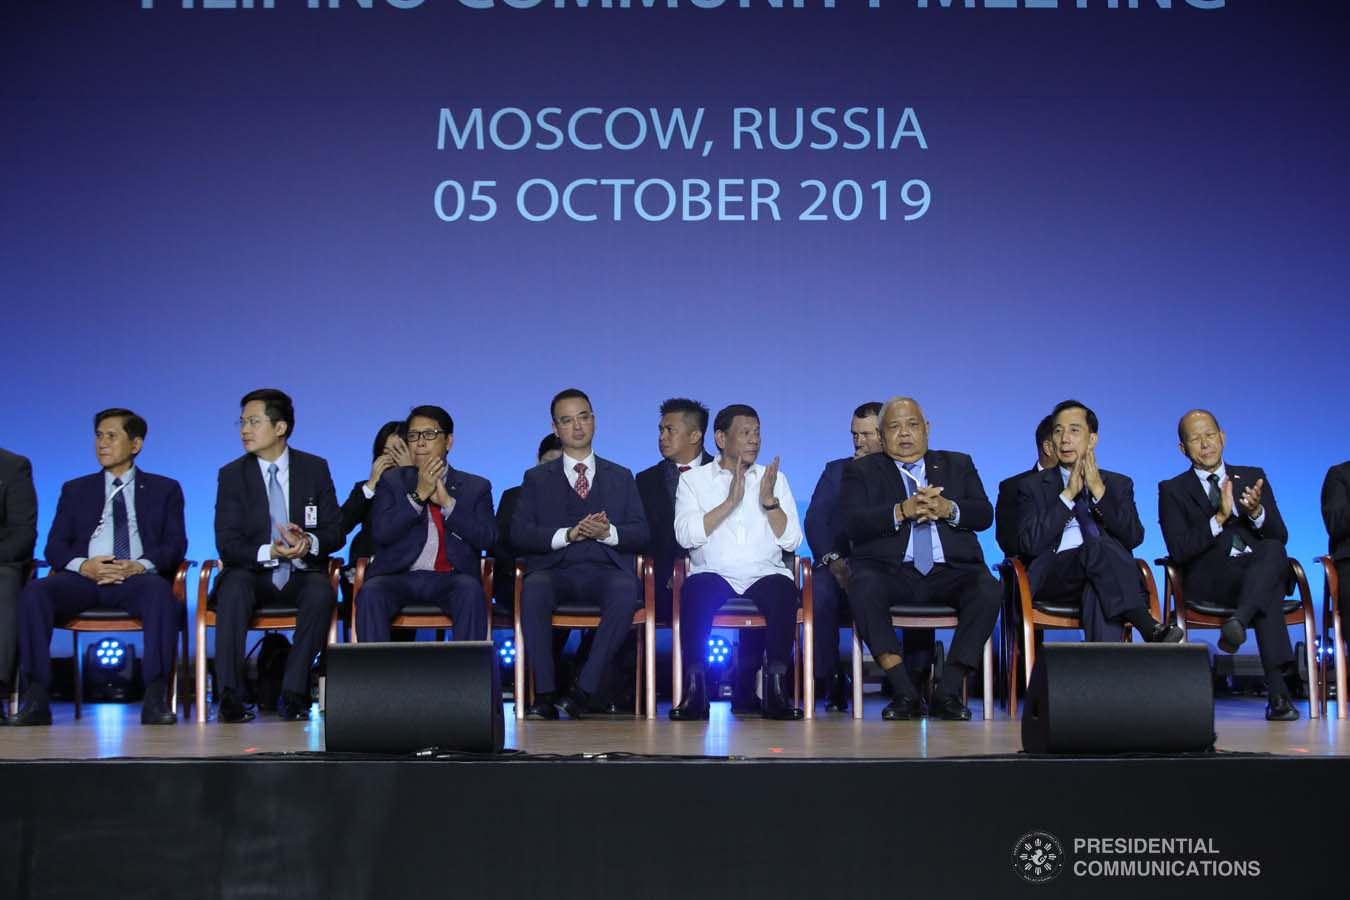 President Rodrigo Roa Duterte applauds while witnessing the program proper during his meeting with the Filipino community at the Exhibition of Achievements of National Economy (VDNH) in Moscow on October 5, 2019. ROBINSON NIÑAL JR./PRESIDENTIAL PHOTO